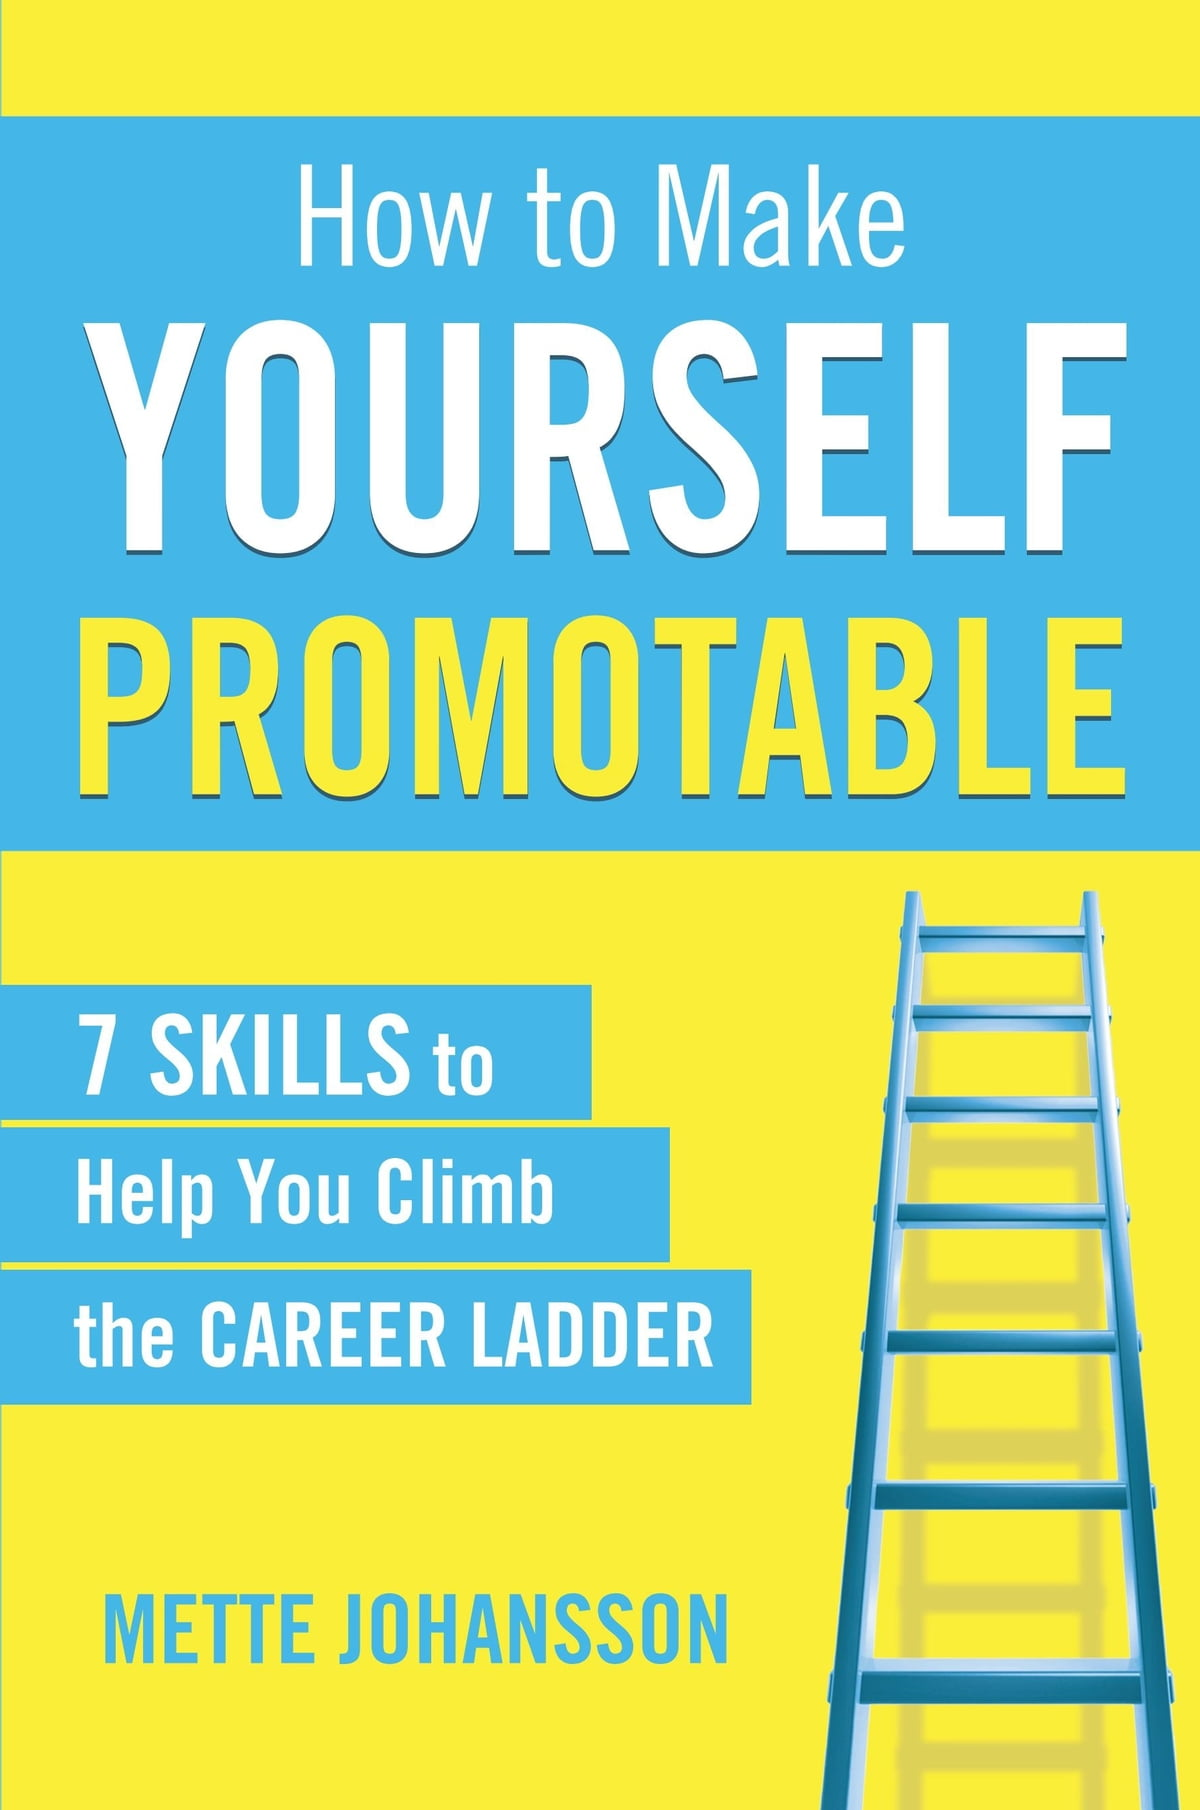 How to make yourself promotable ebook by mette johansson how to make yourself promotable ebook by mette johansson 9789813170049 rakuten kobo fandeluxe PDF